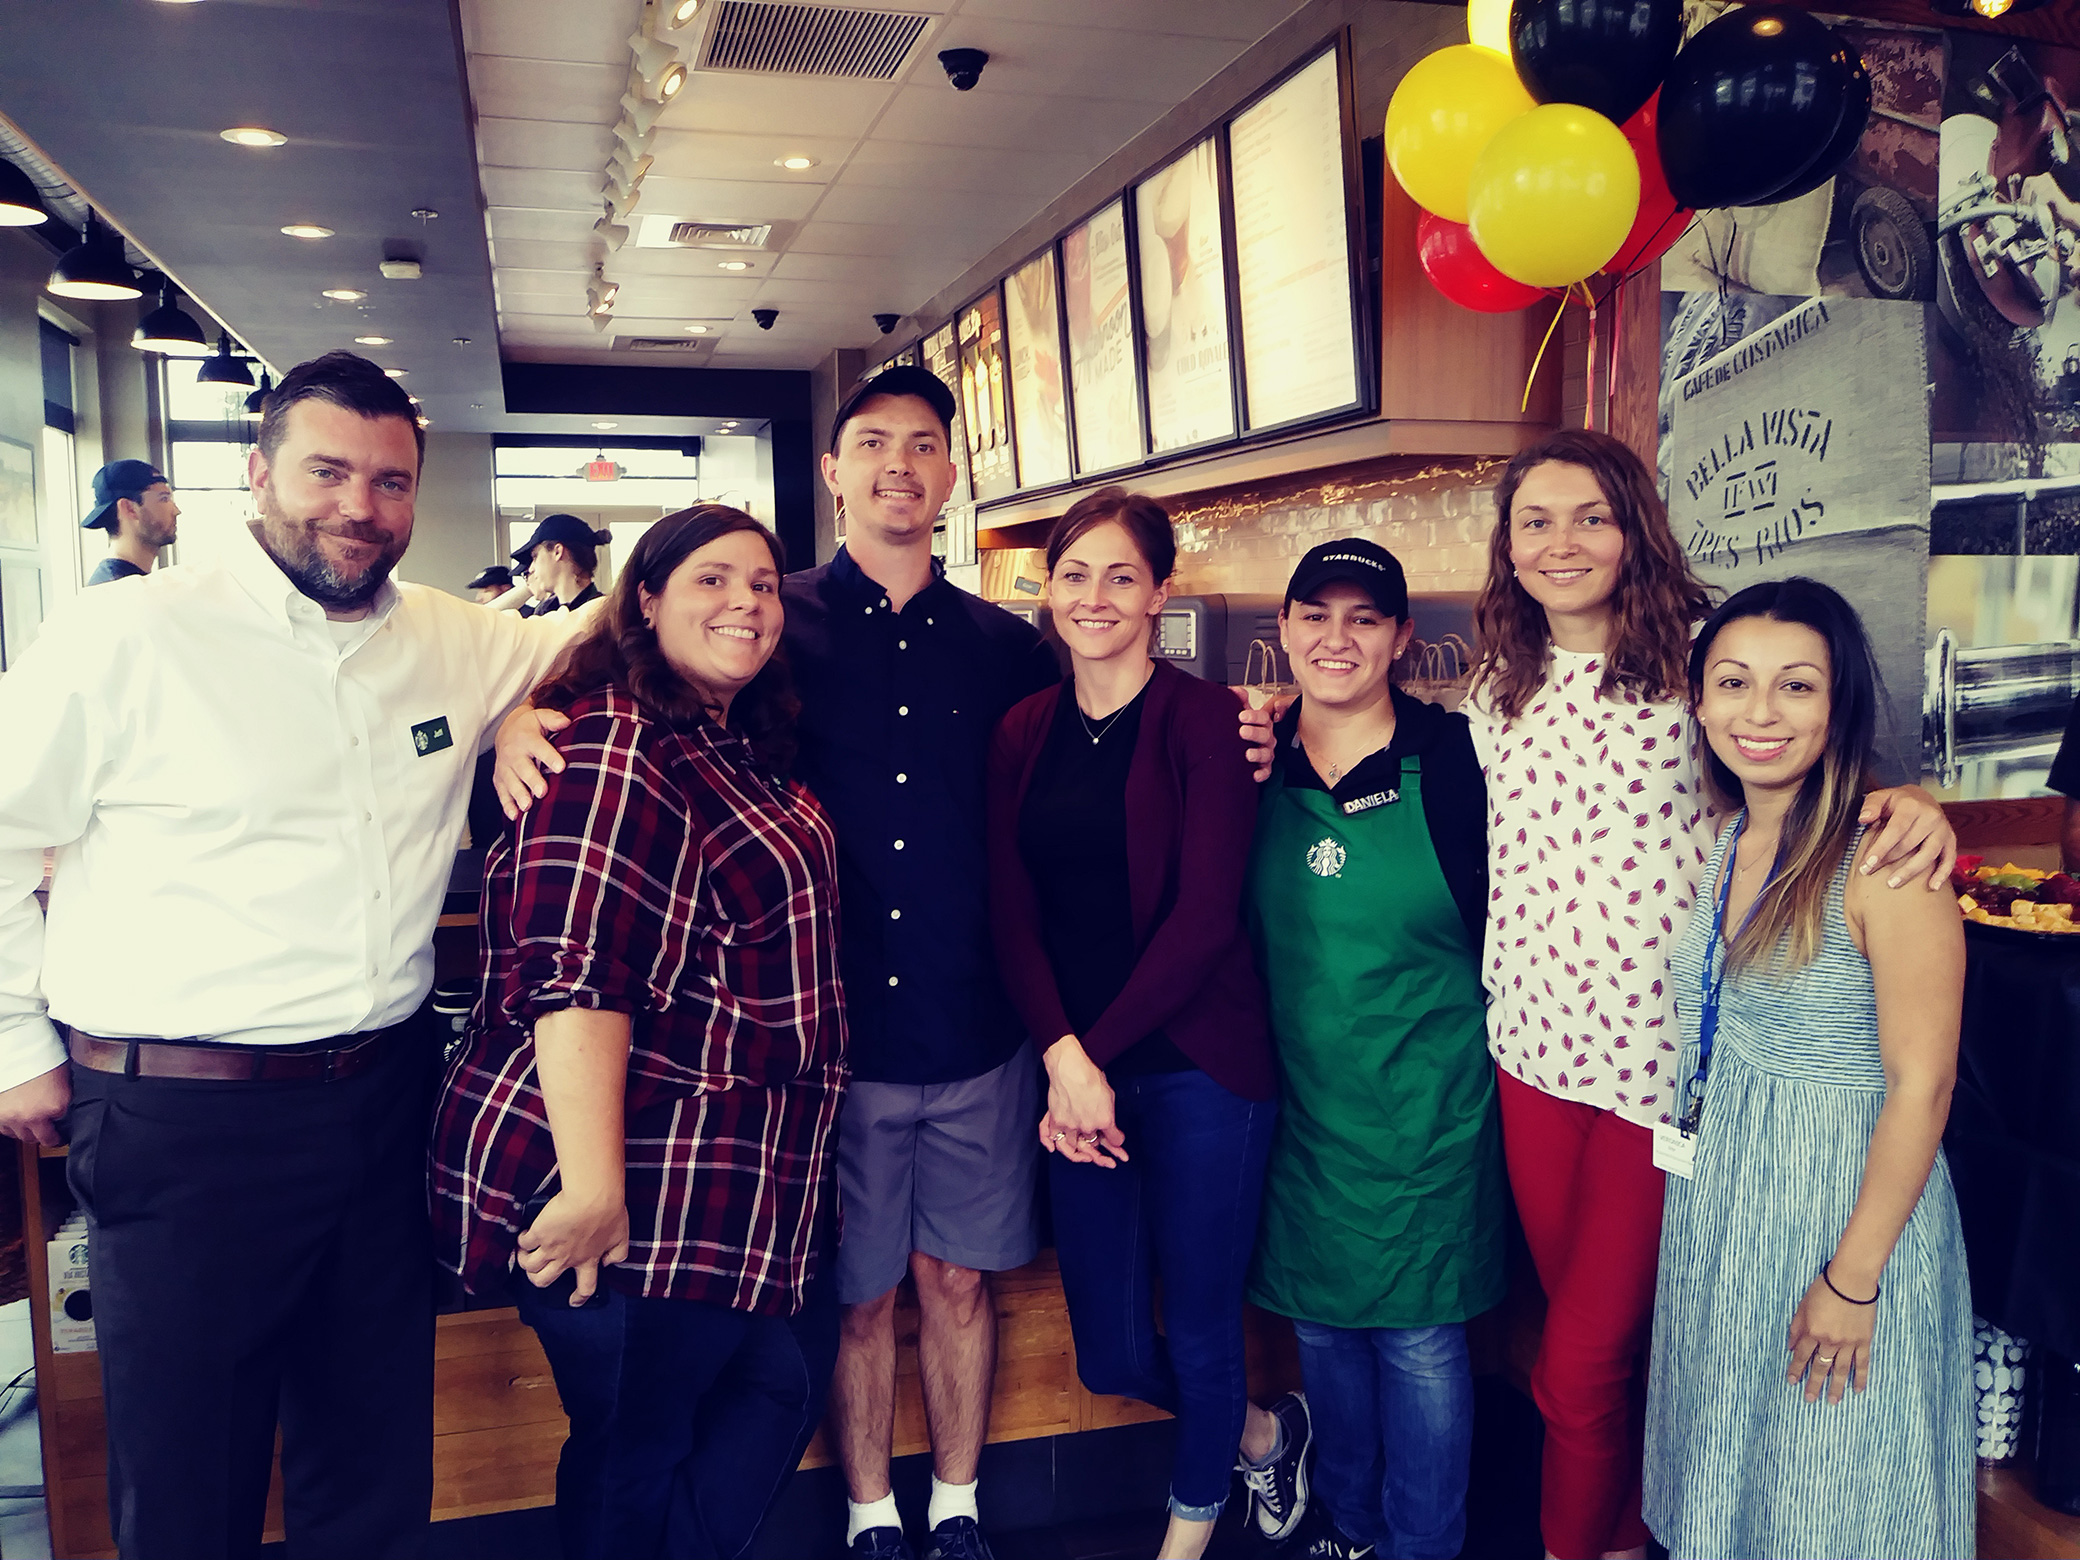 JSSA Client Gets Special Send-Off From Starbucks